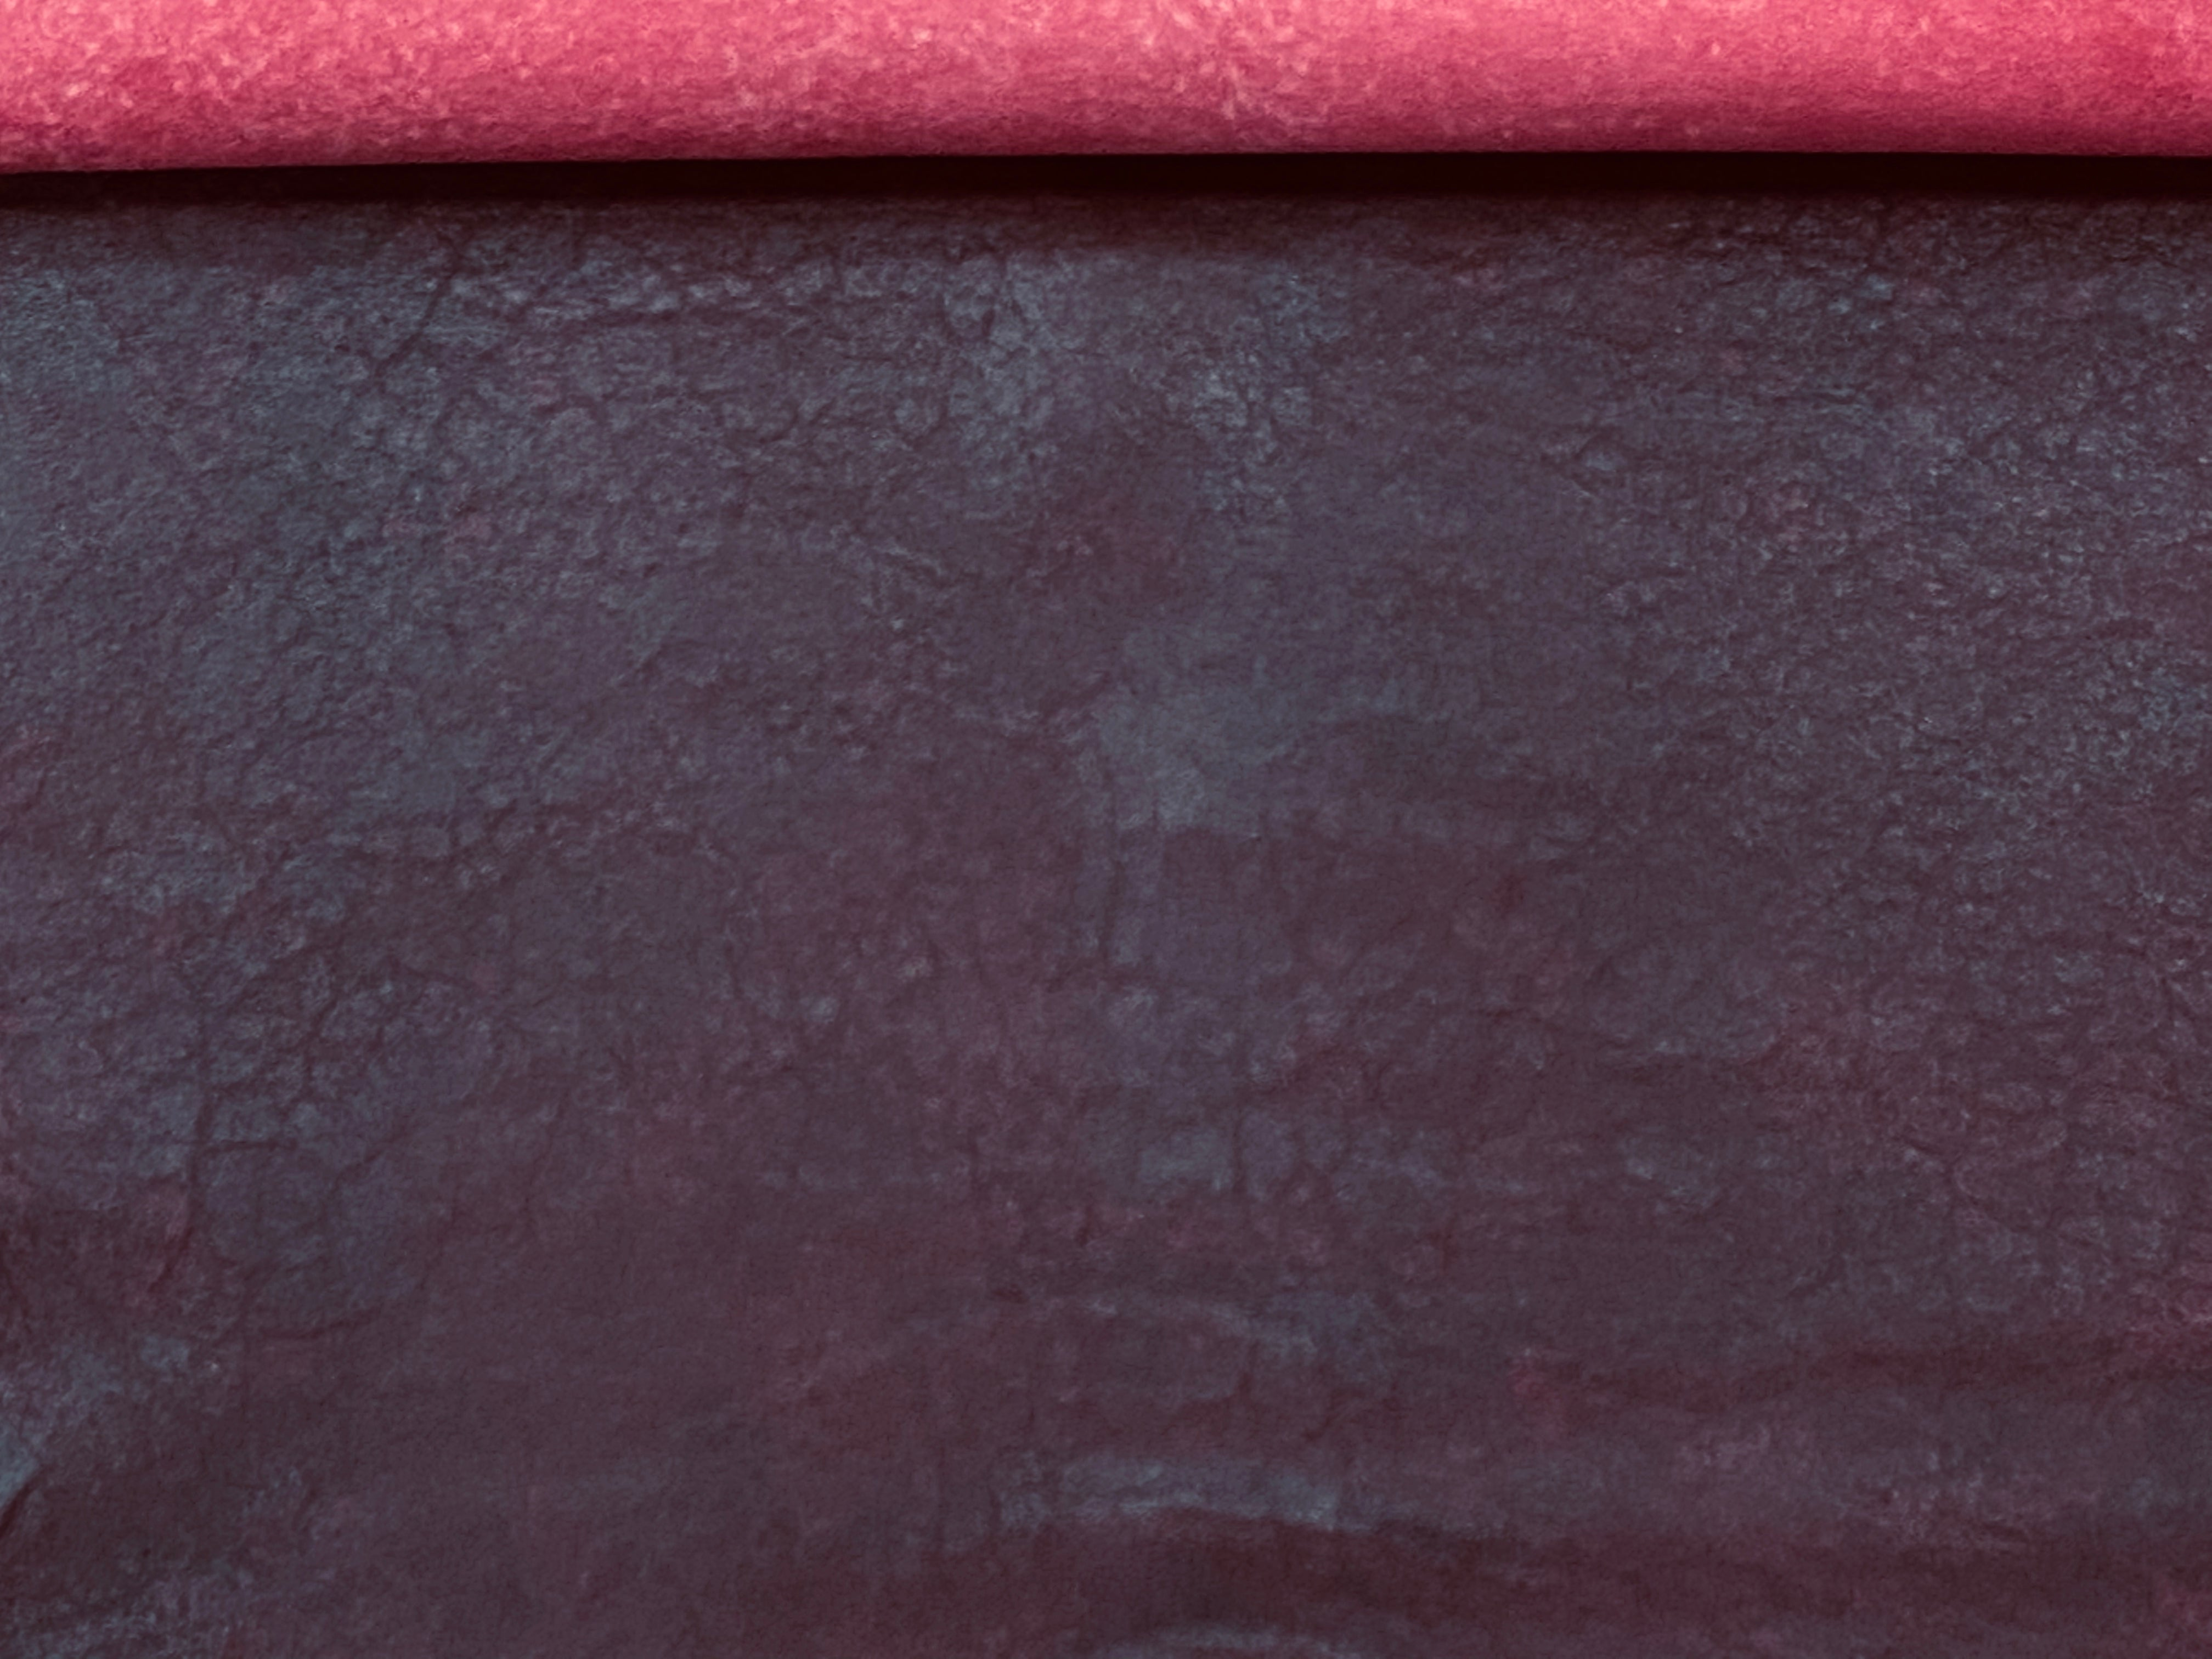 Antique Burgundy Leather Skin : Distressed Lambskin (0.7-0.8mm) , Perfect for Clothing , Leather Jackets , Leather Crafts , Leather Accessories.